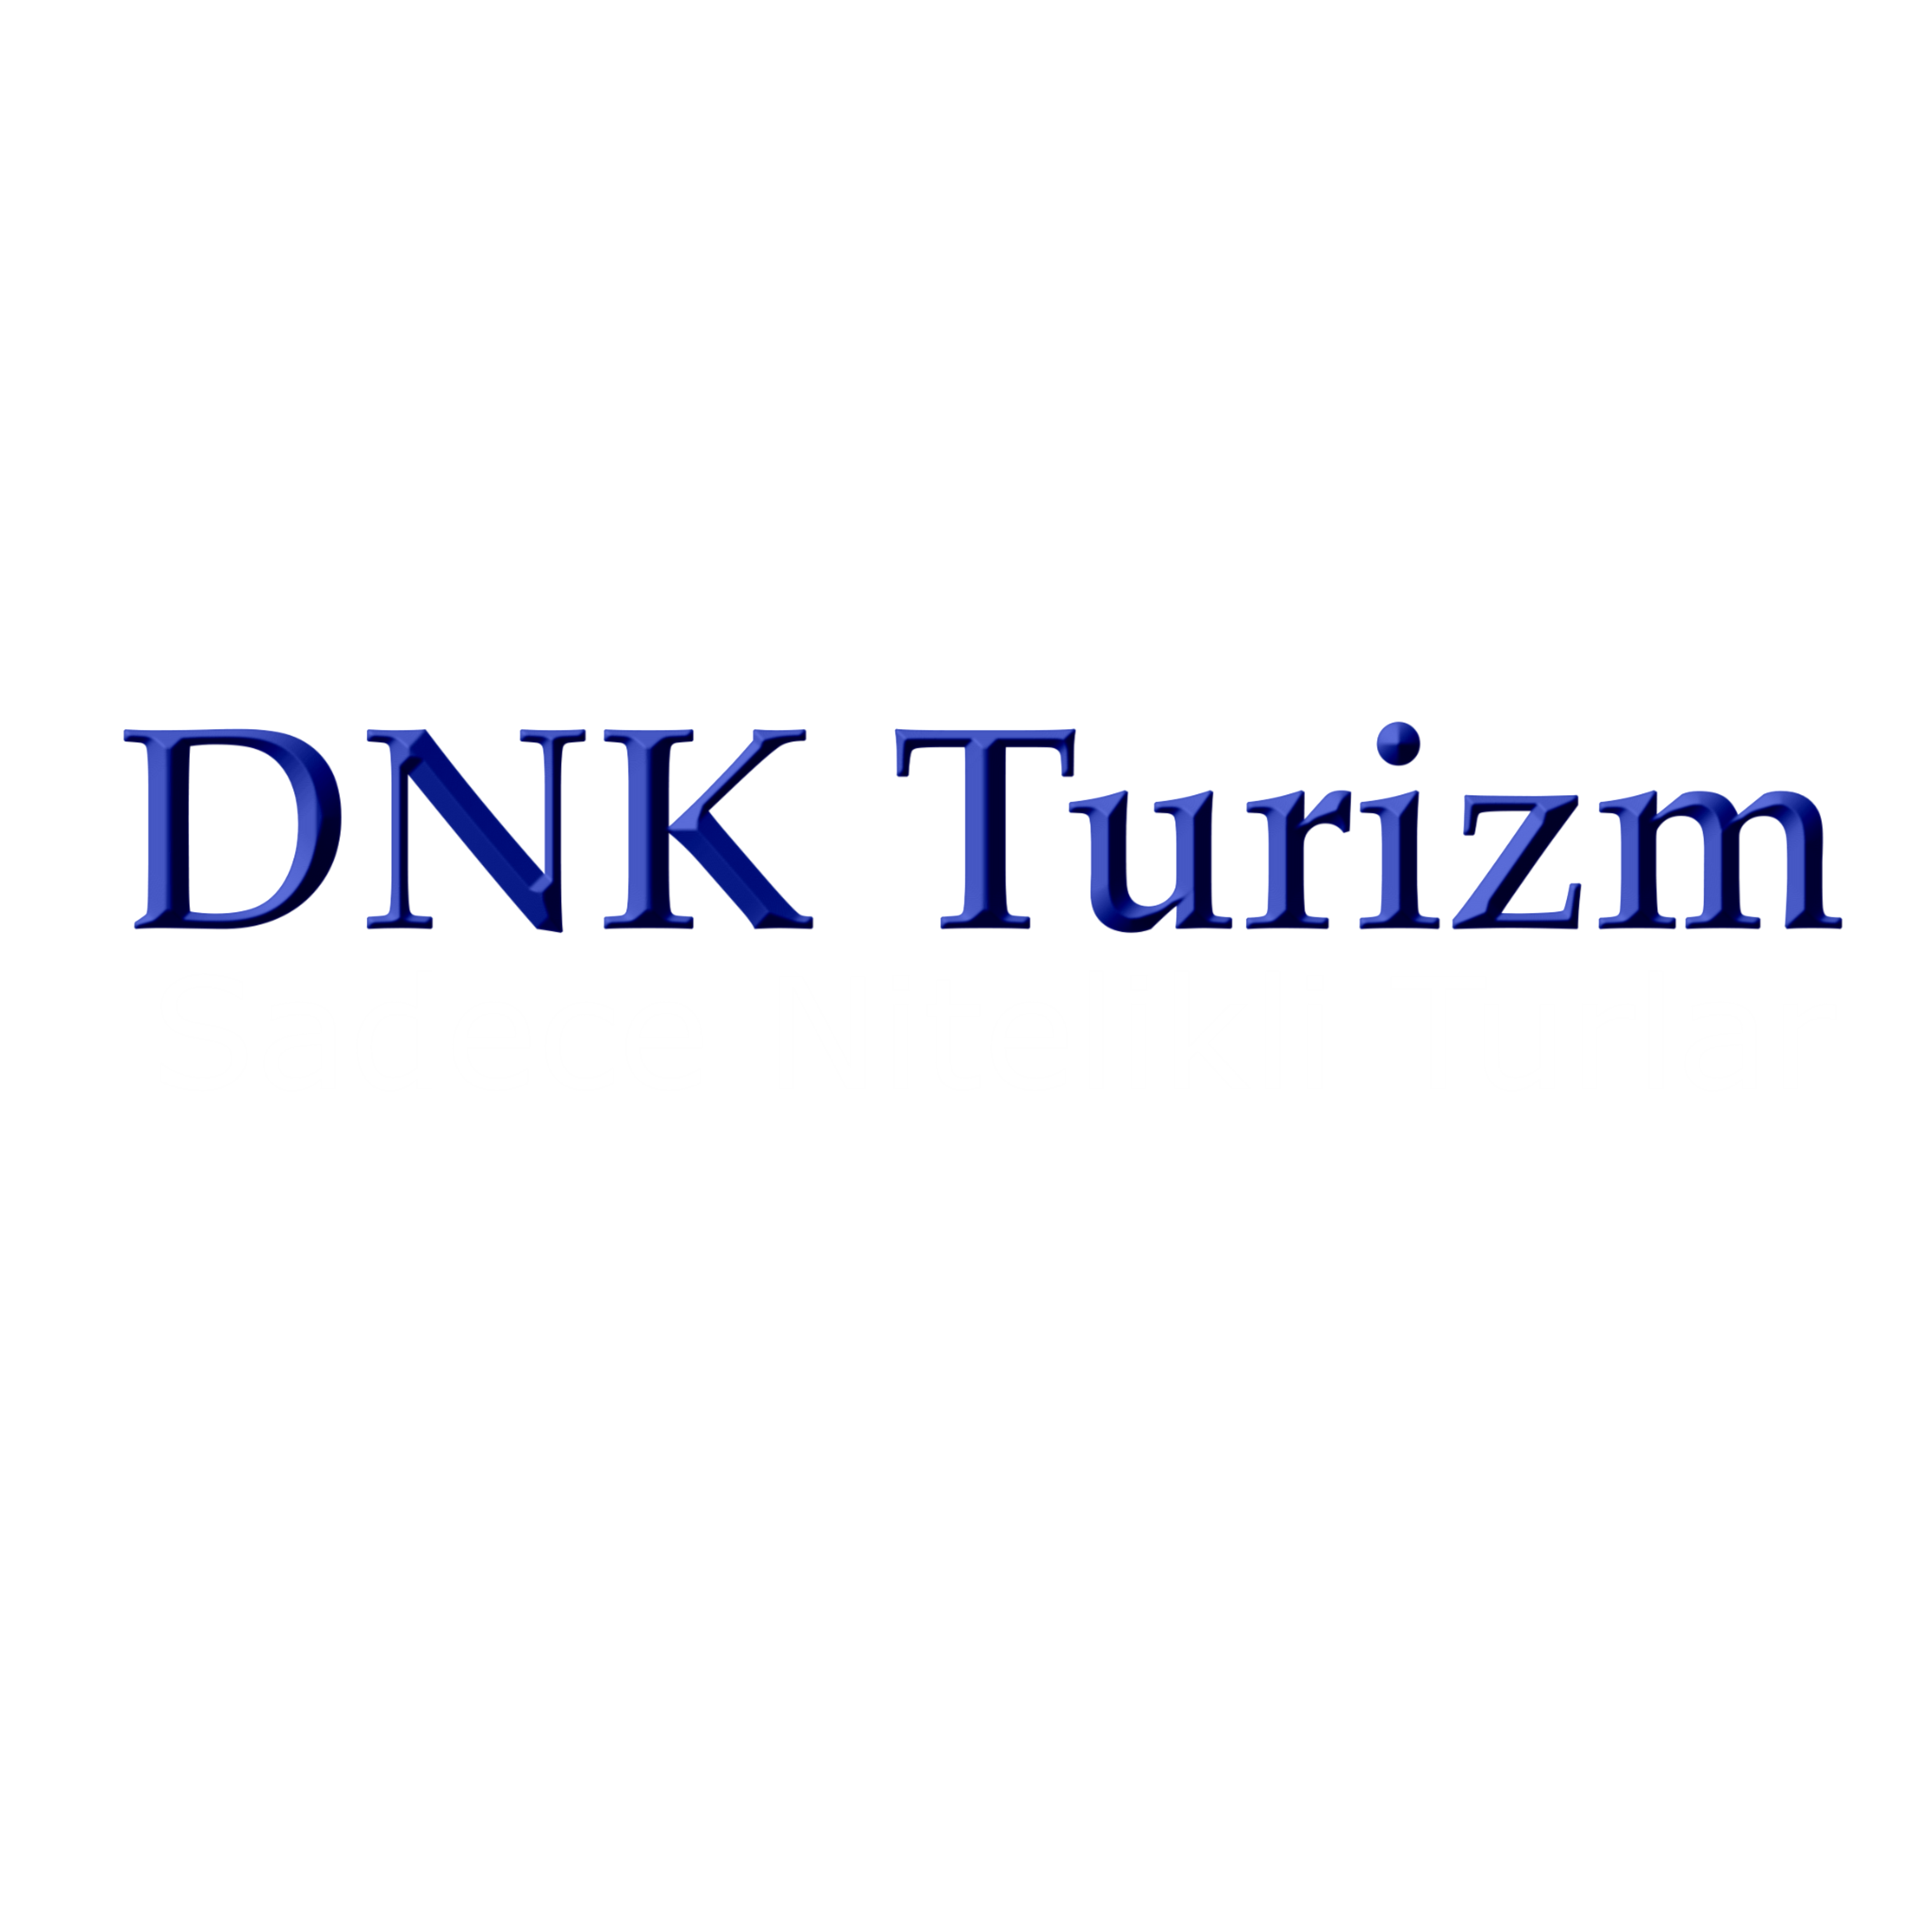 DNK TURIZM |   Tour tags  Deluxe